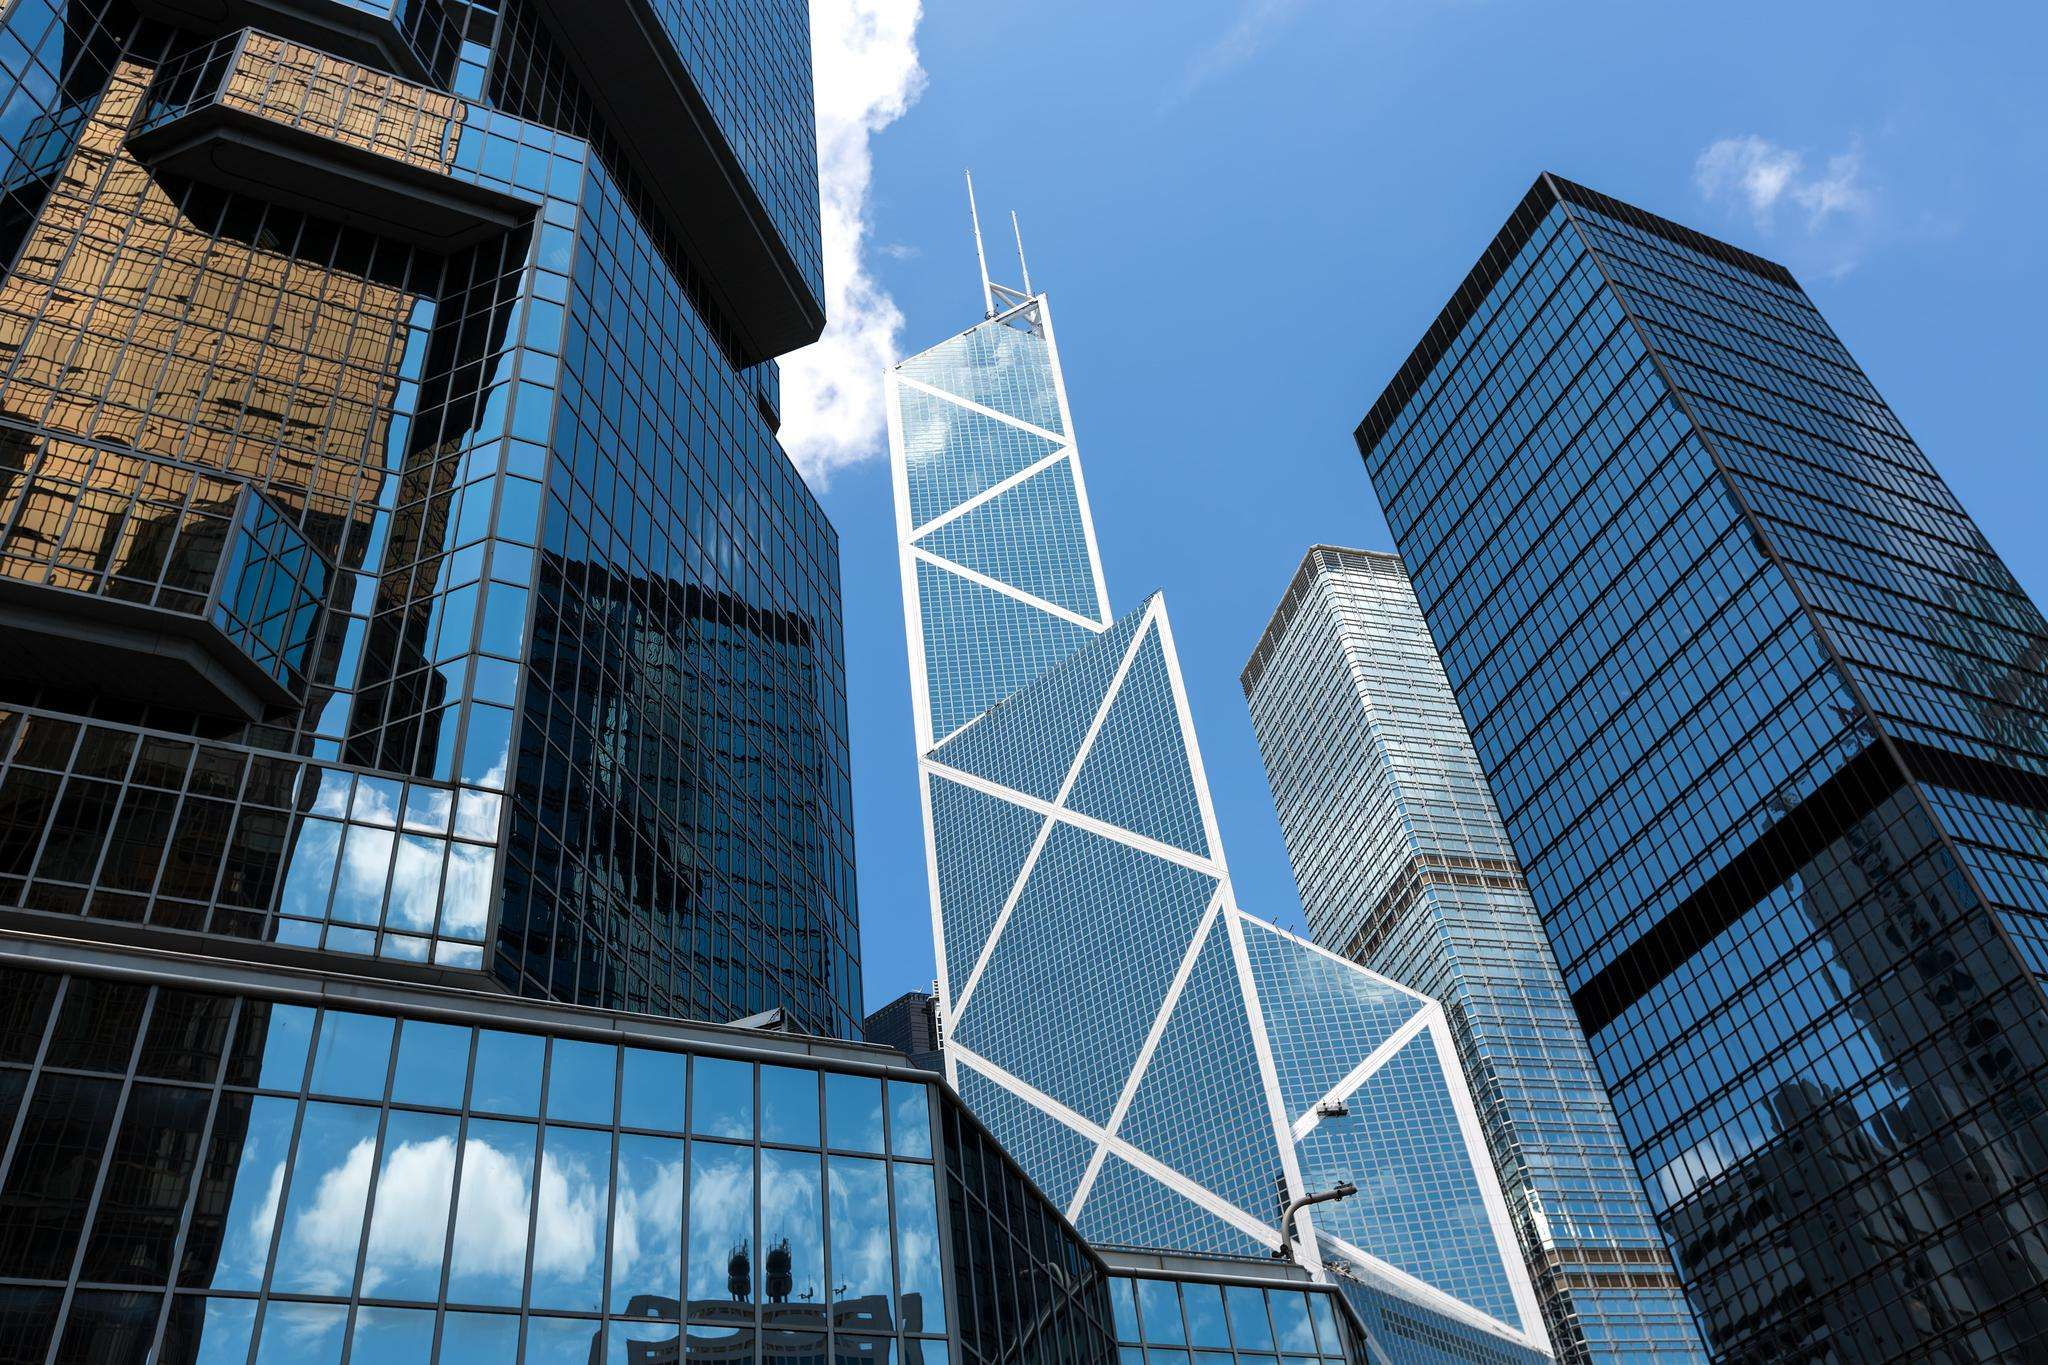 HKSAR gov't assists record number of companies setting up in Hong Kong